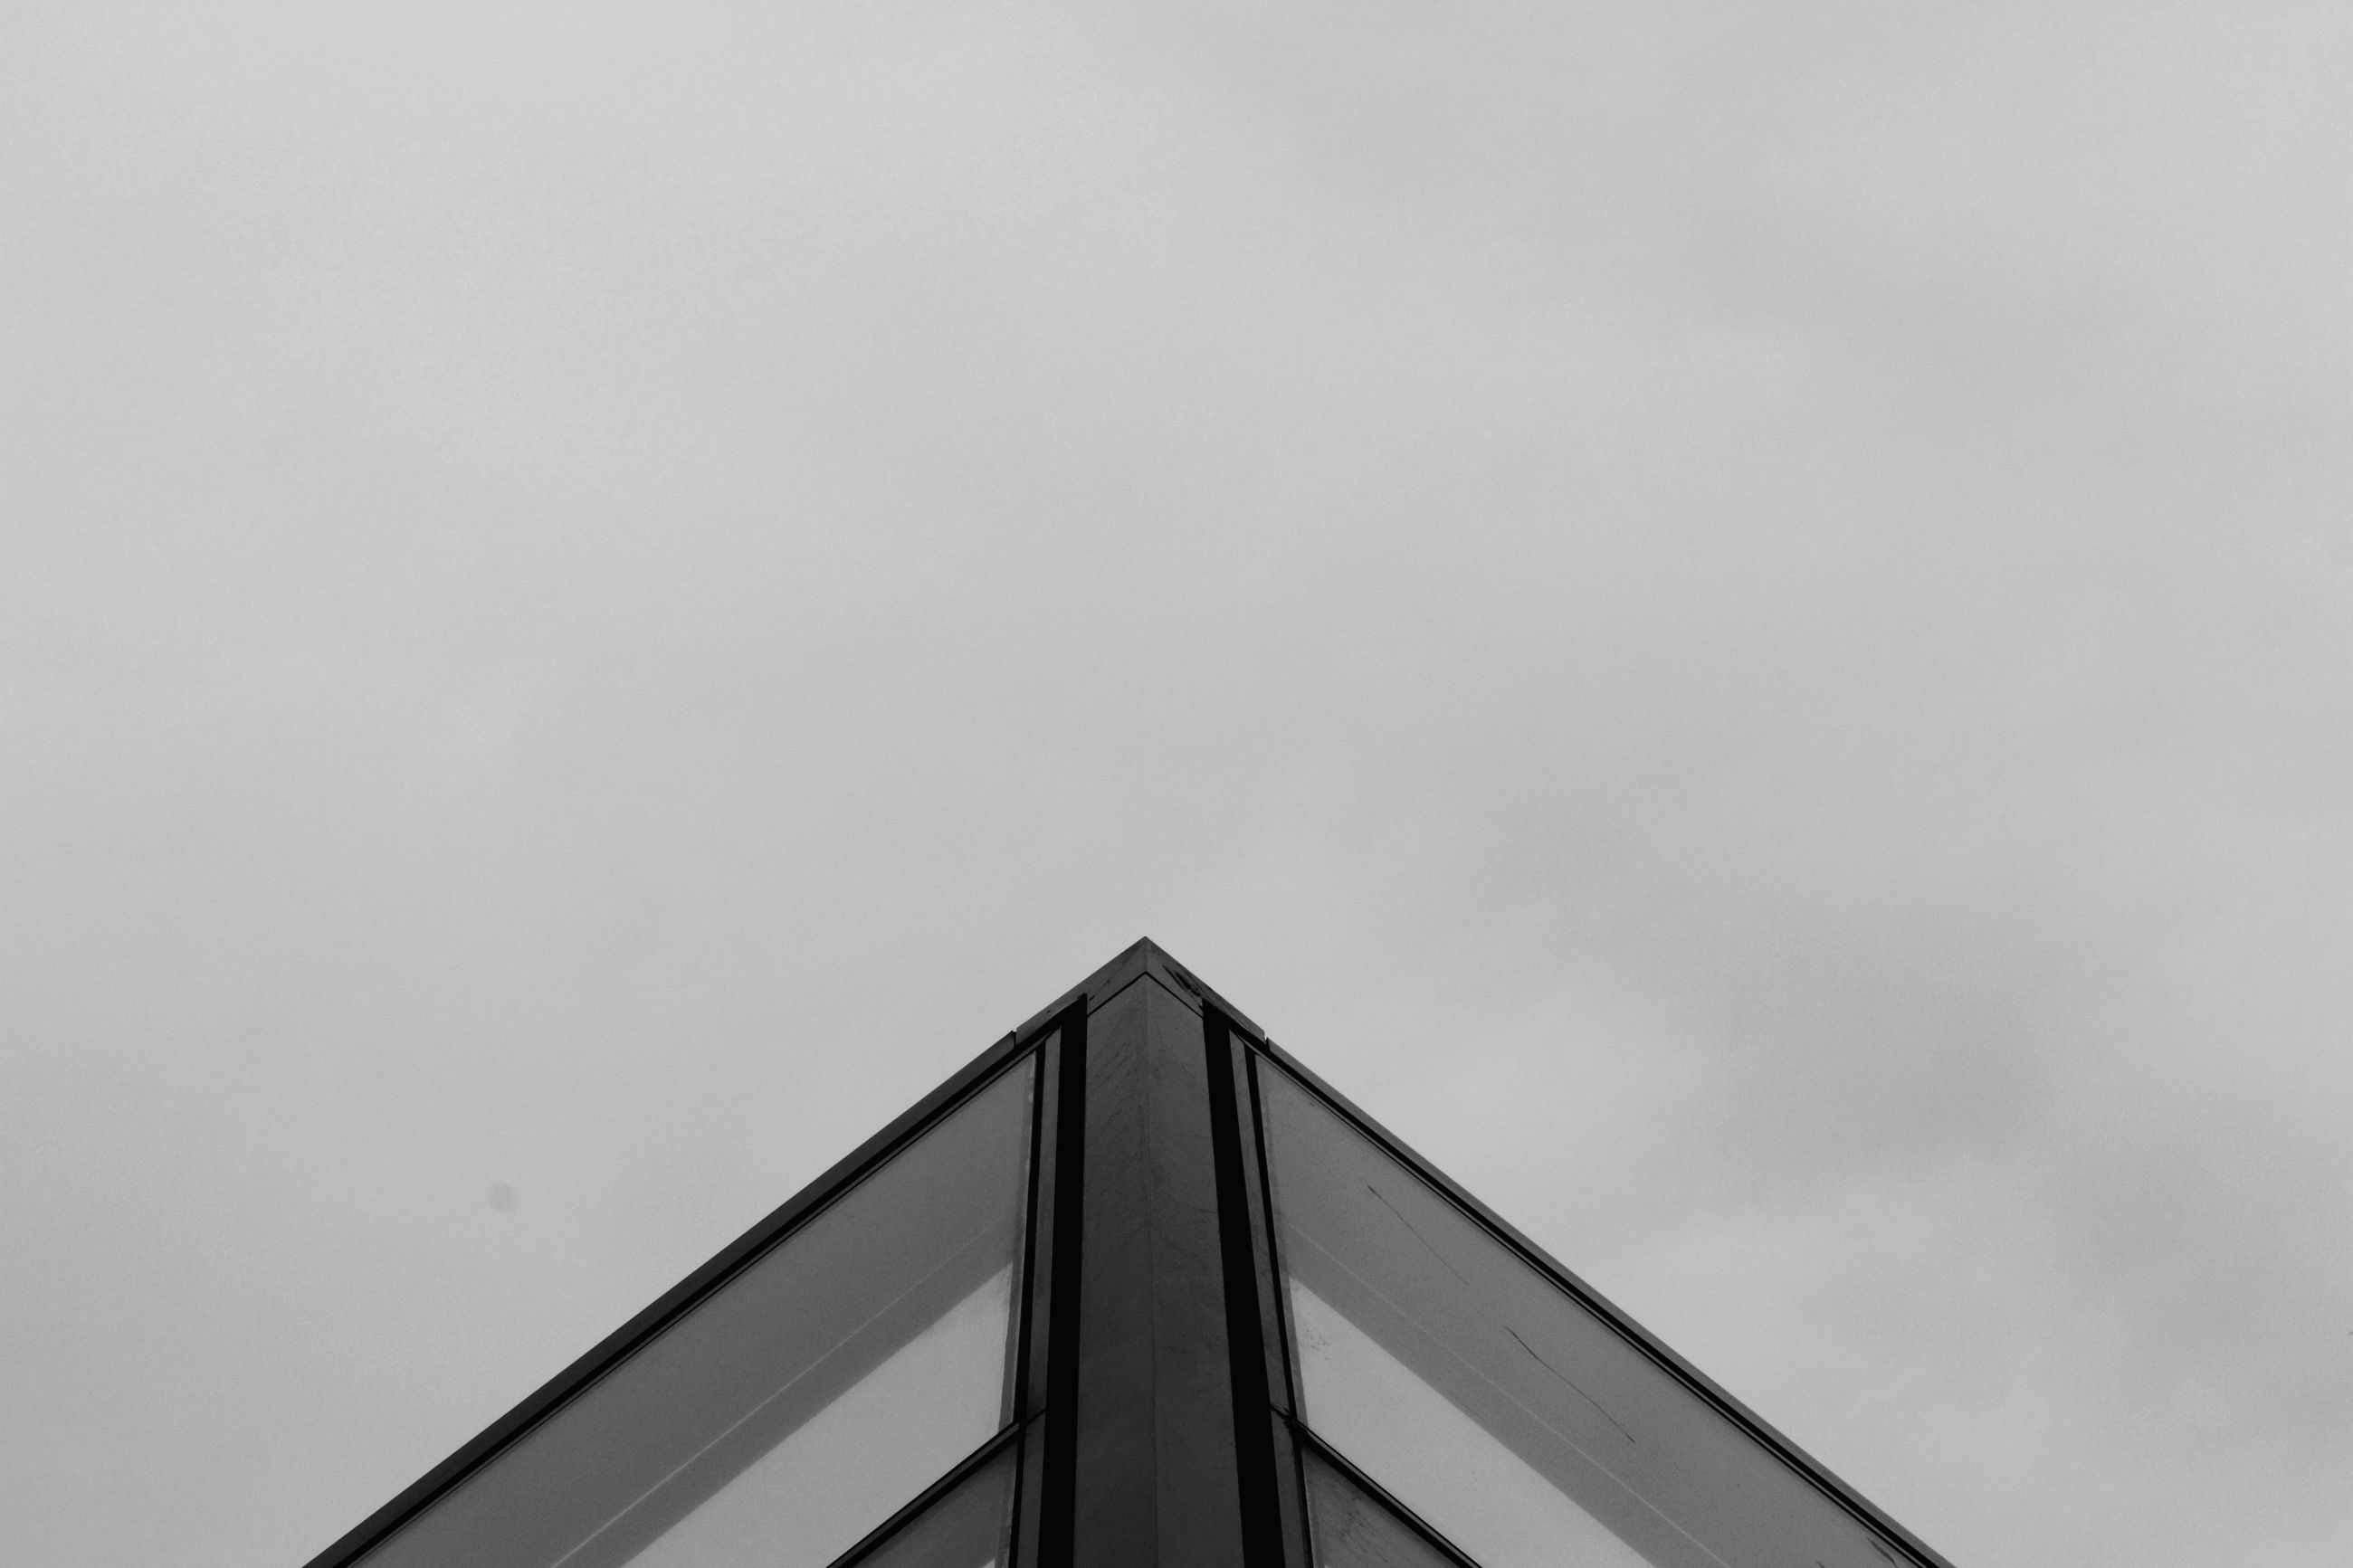 architecture, low angle view, built structure, building exterior, copy space, clear sky, high section, sky, building, outdoors, day, no people, city, modern, part of, overcast, window, office building, roof, residential structure